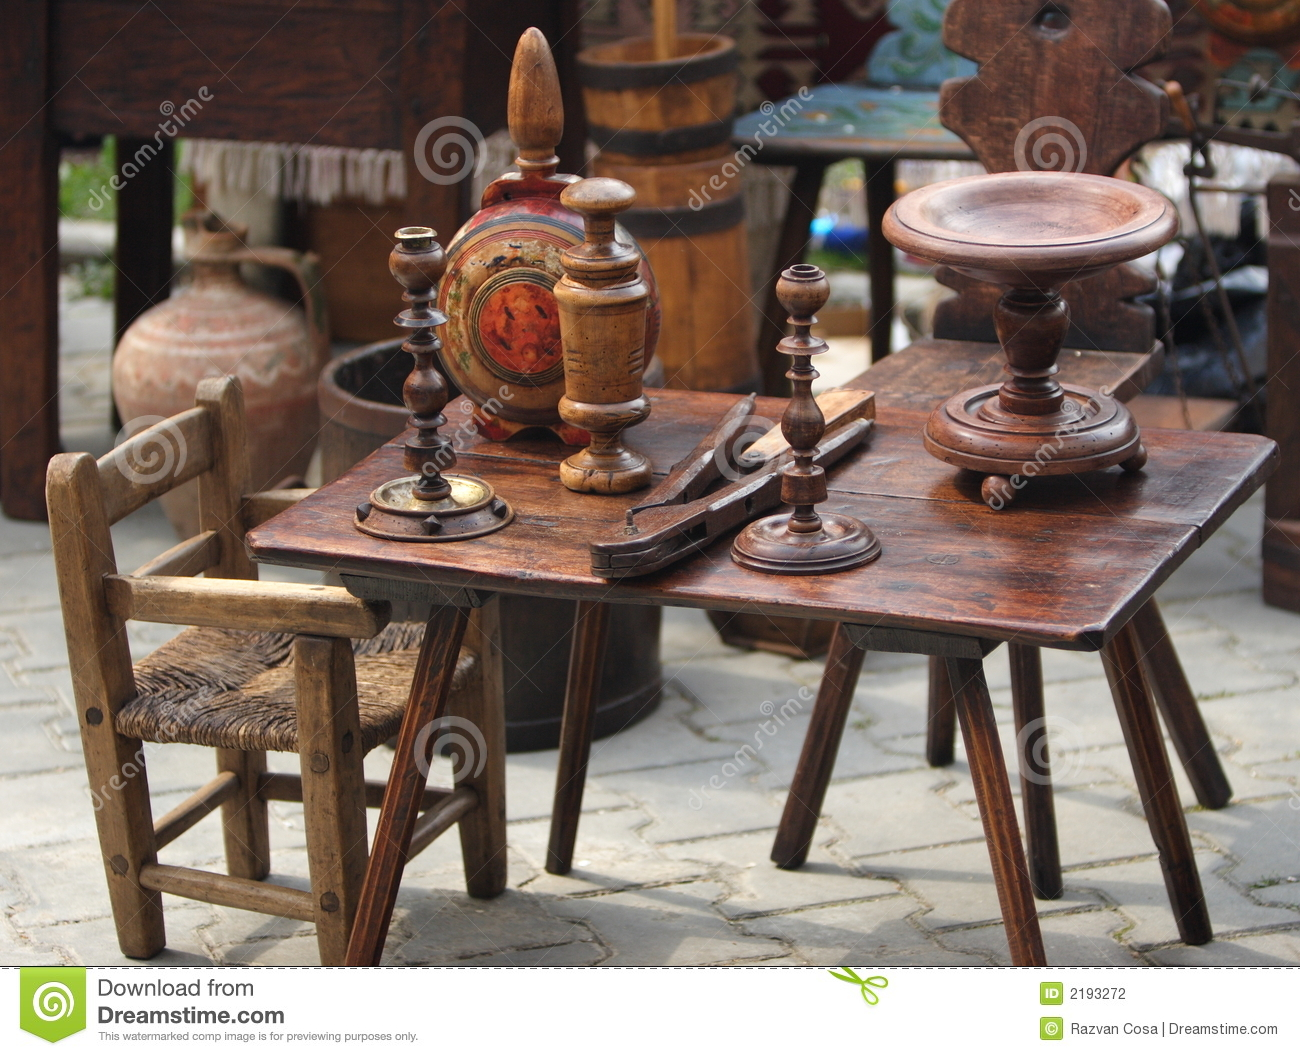 Old wood furniture items stock photo image of swap furniture 2193272 - Furnitur photos ...